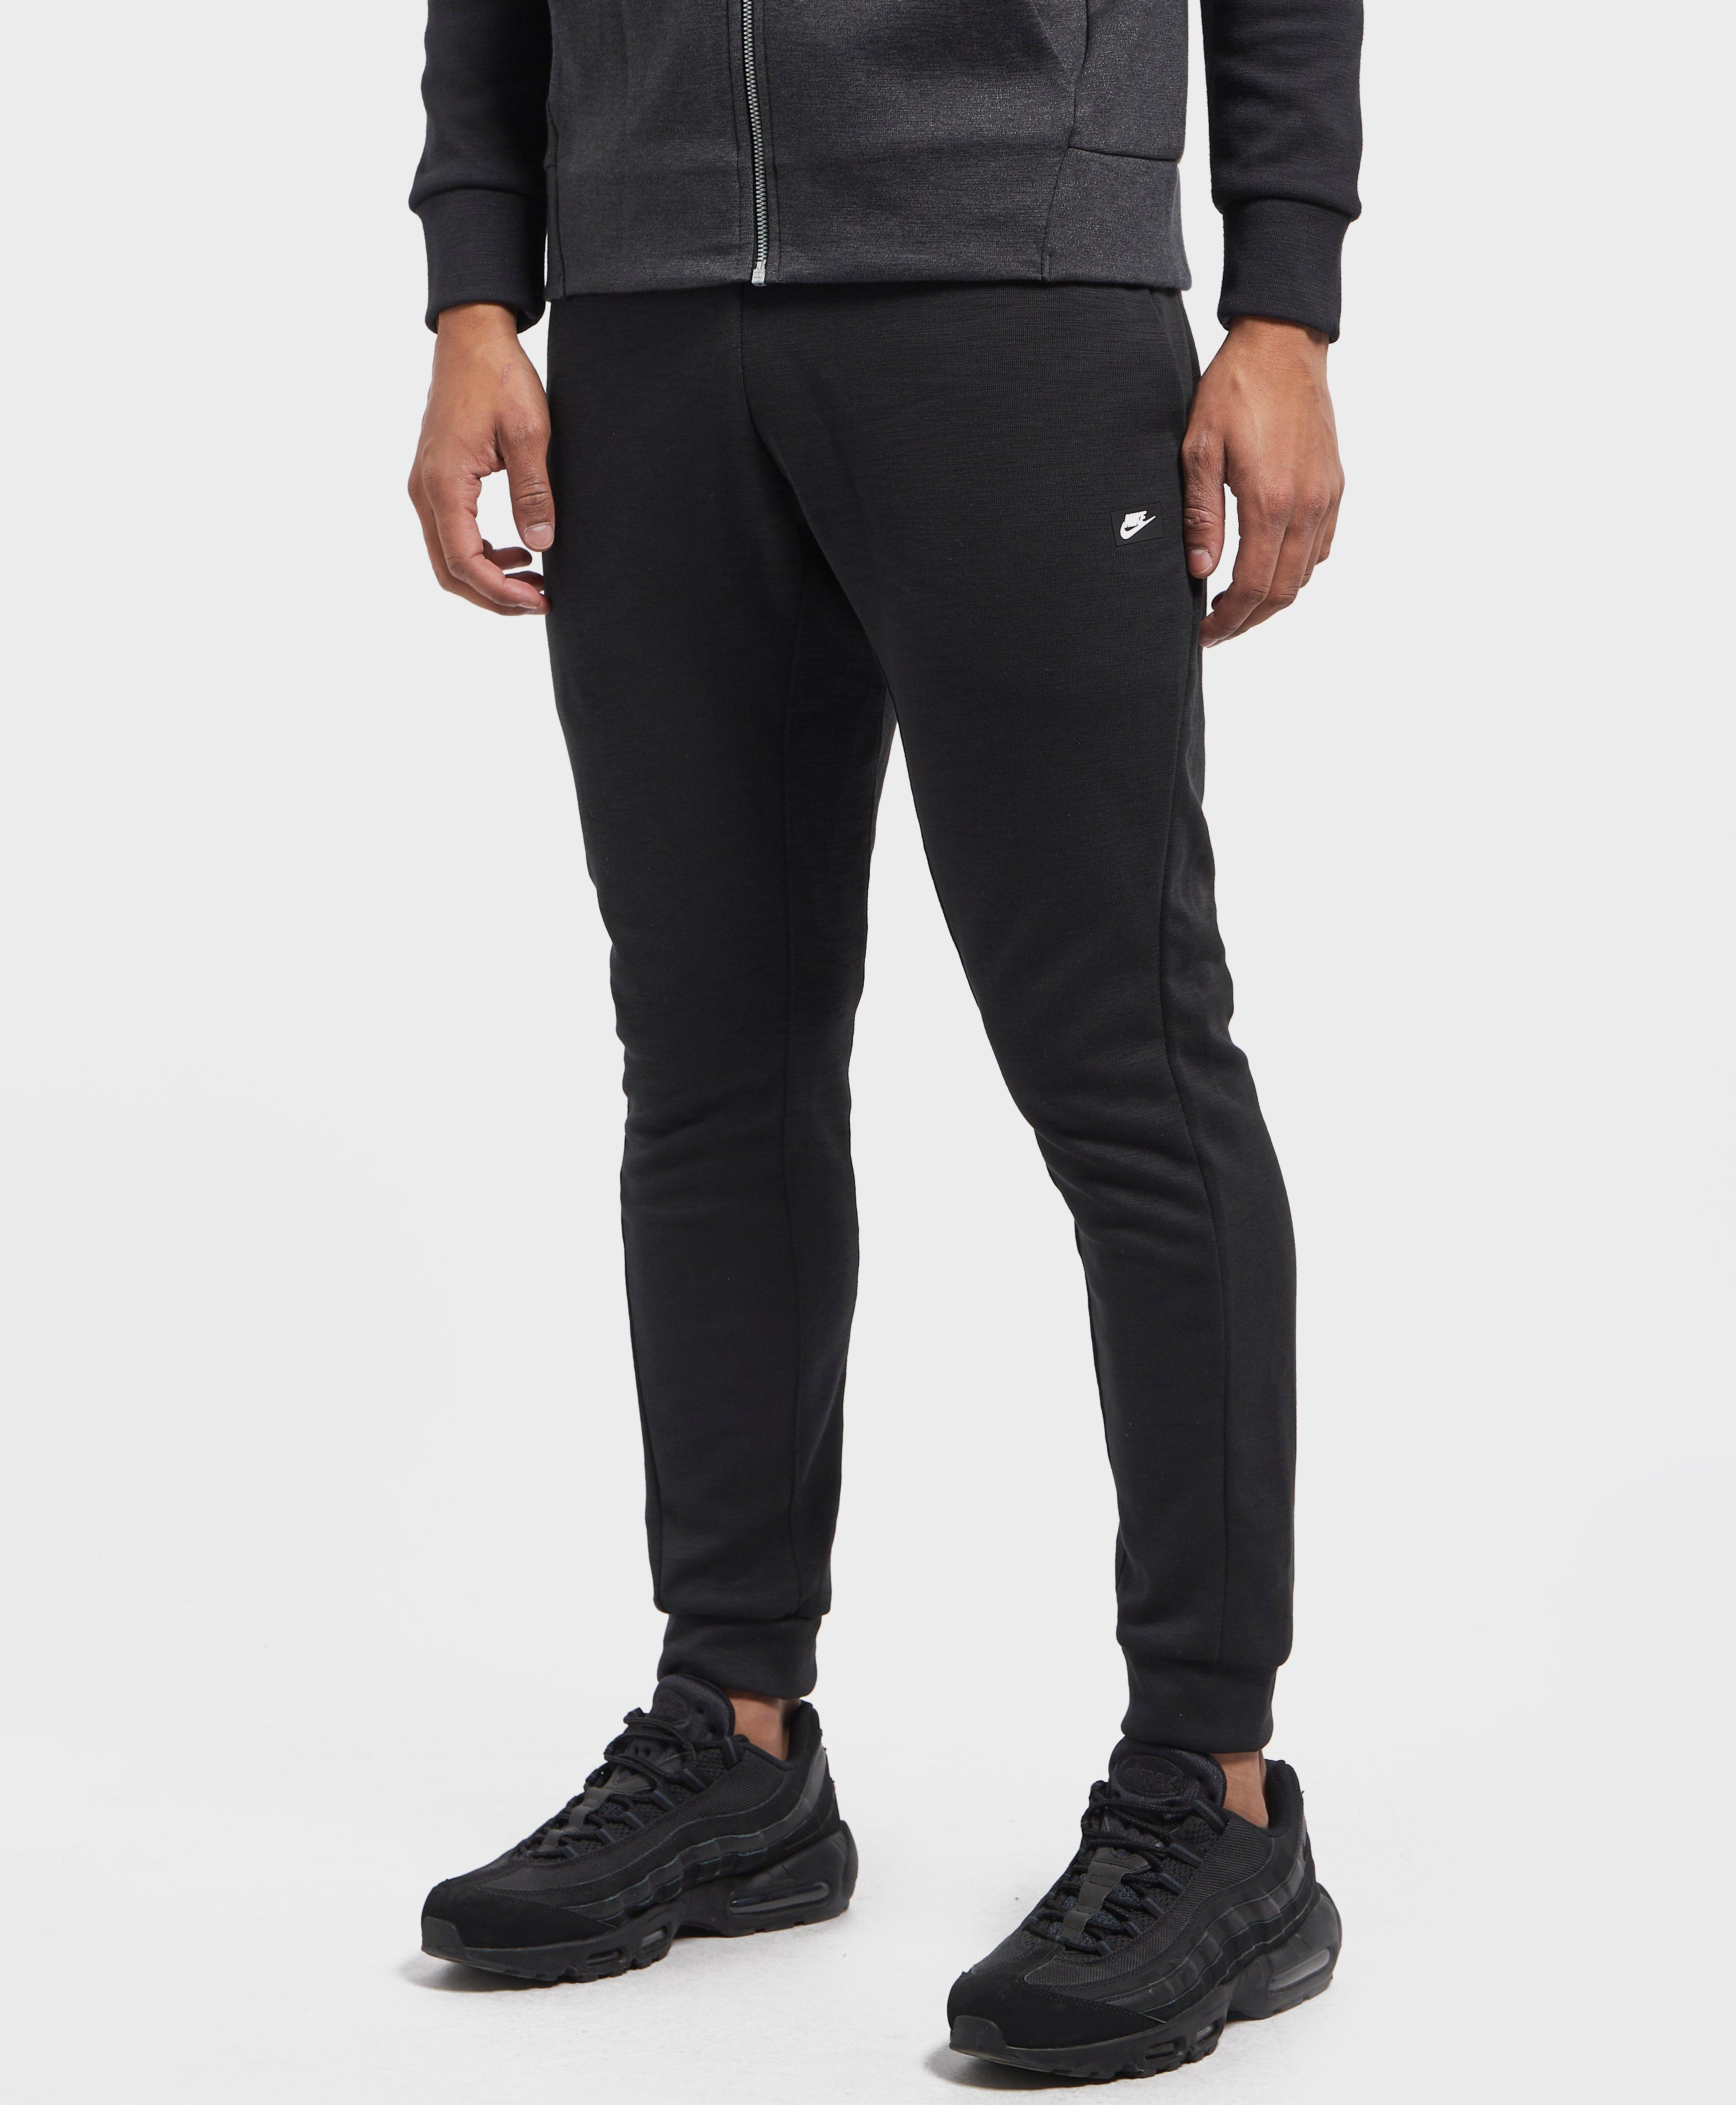 new product pretty cool enjoy free shipping Nike Black Optic Fleece Pants for men